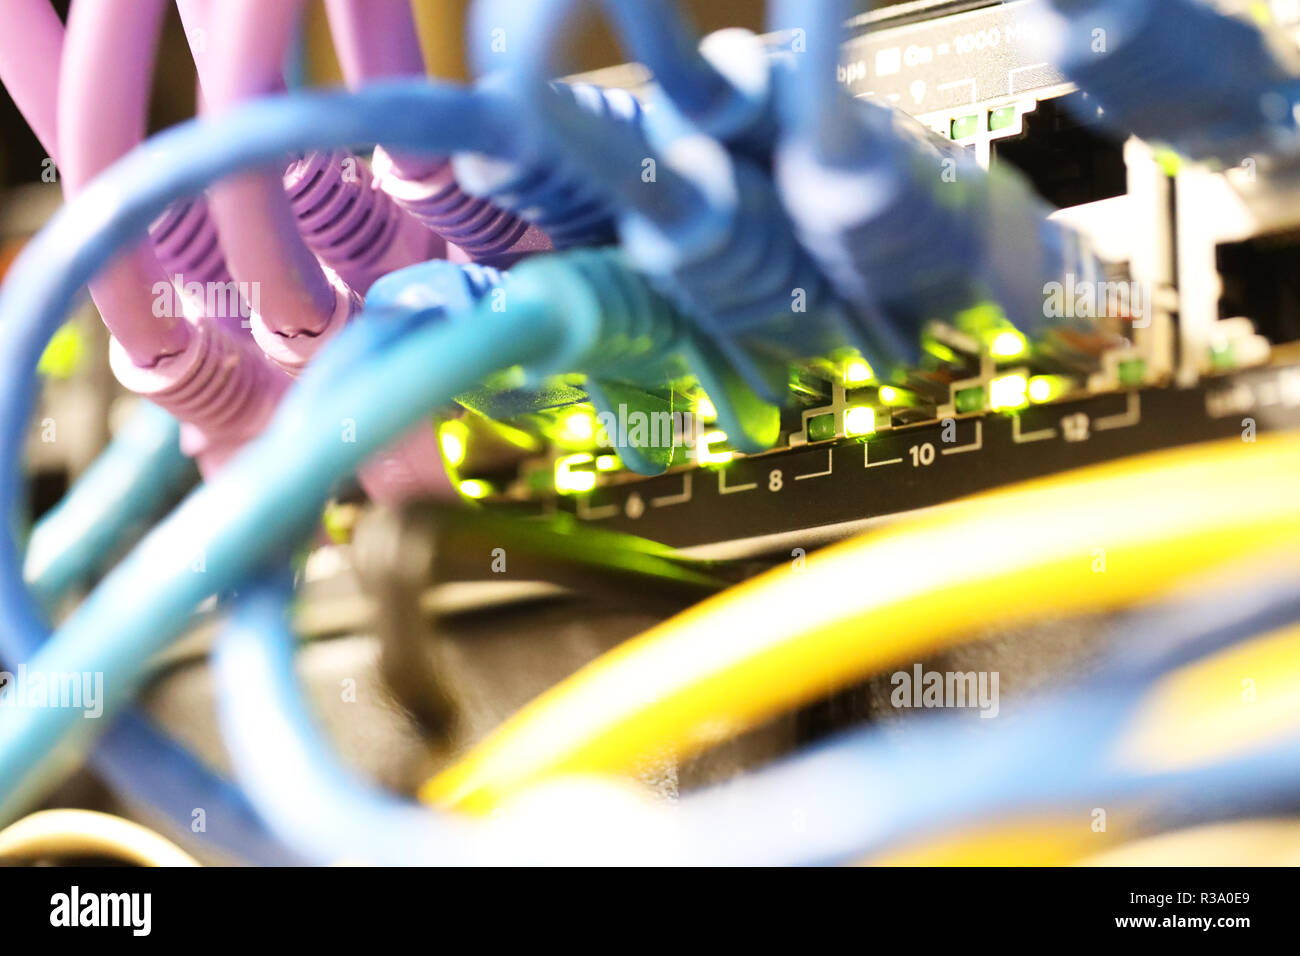 telephone and internet data communication cables, cabling and wires in a port. Infrastructure for communicating and systems in a modern office or work - Stock Image